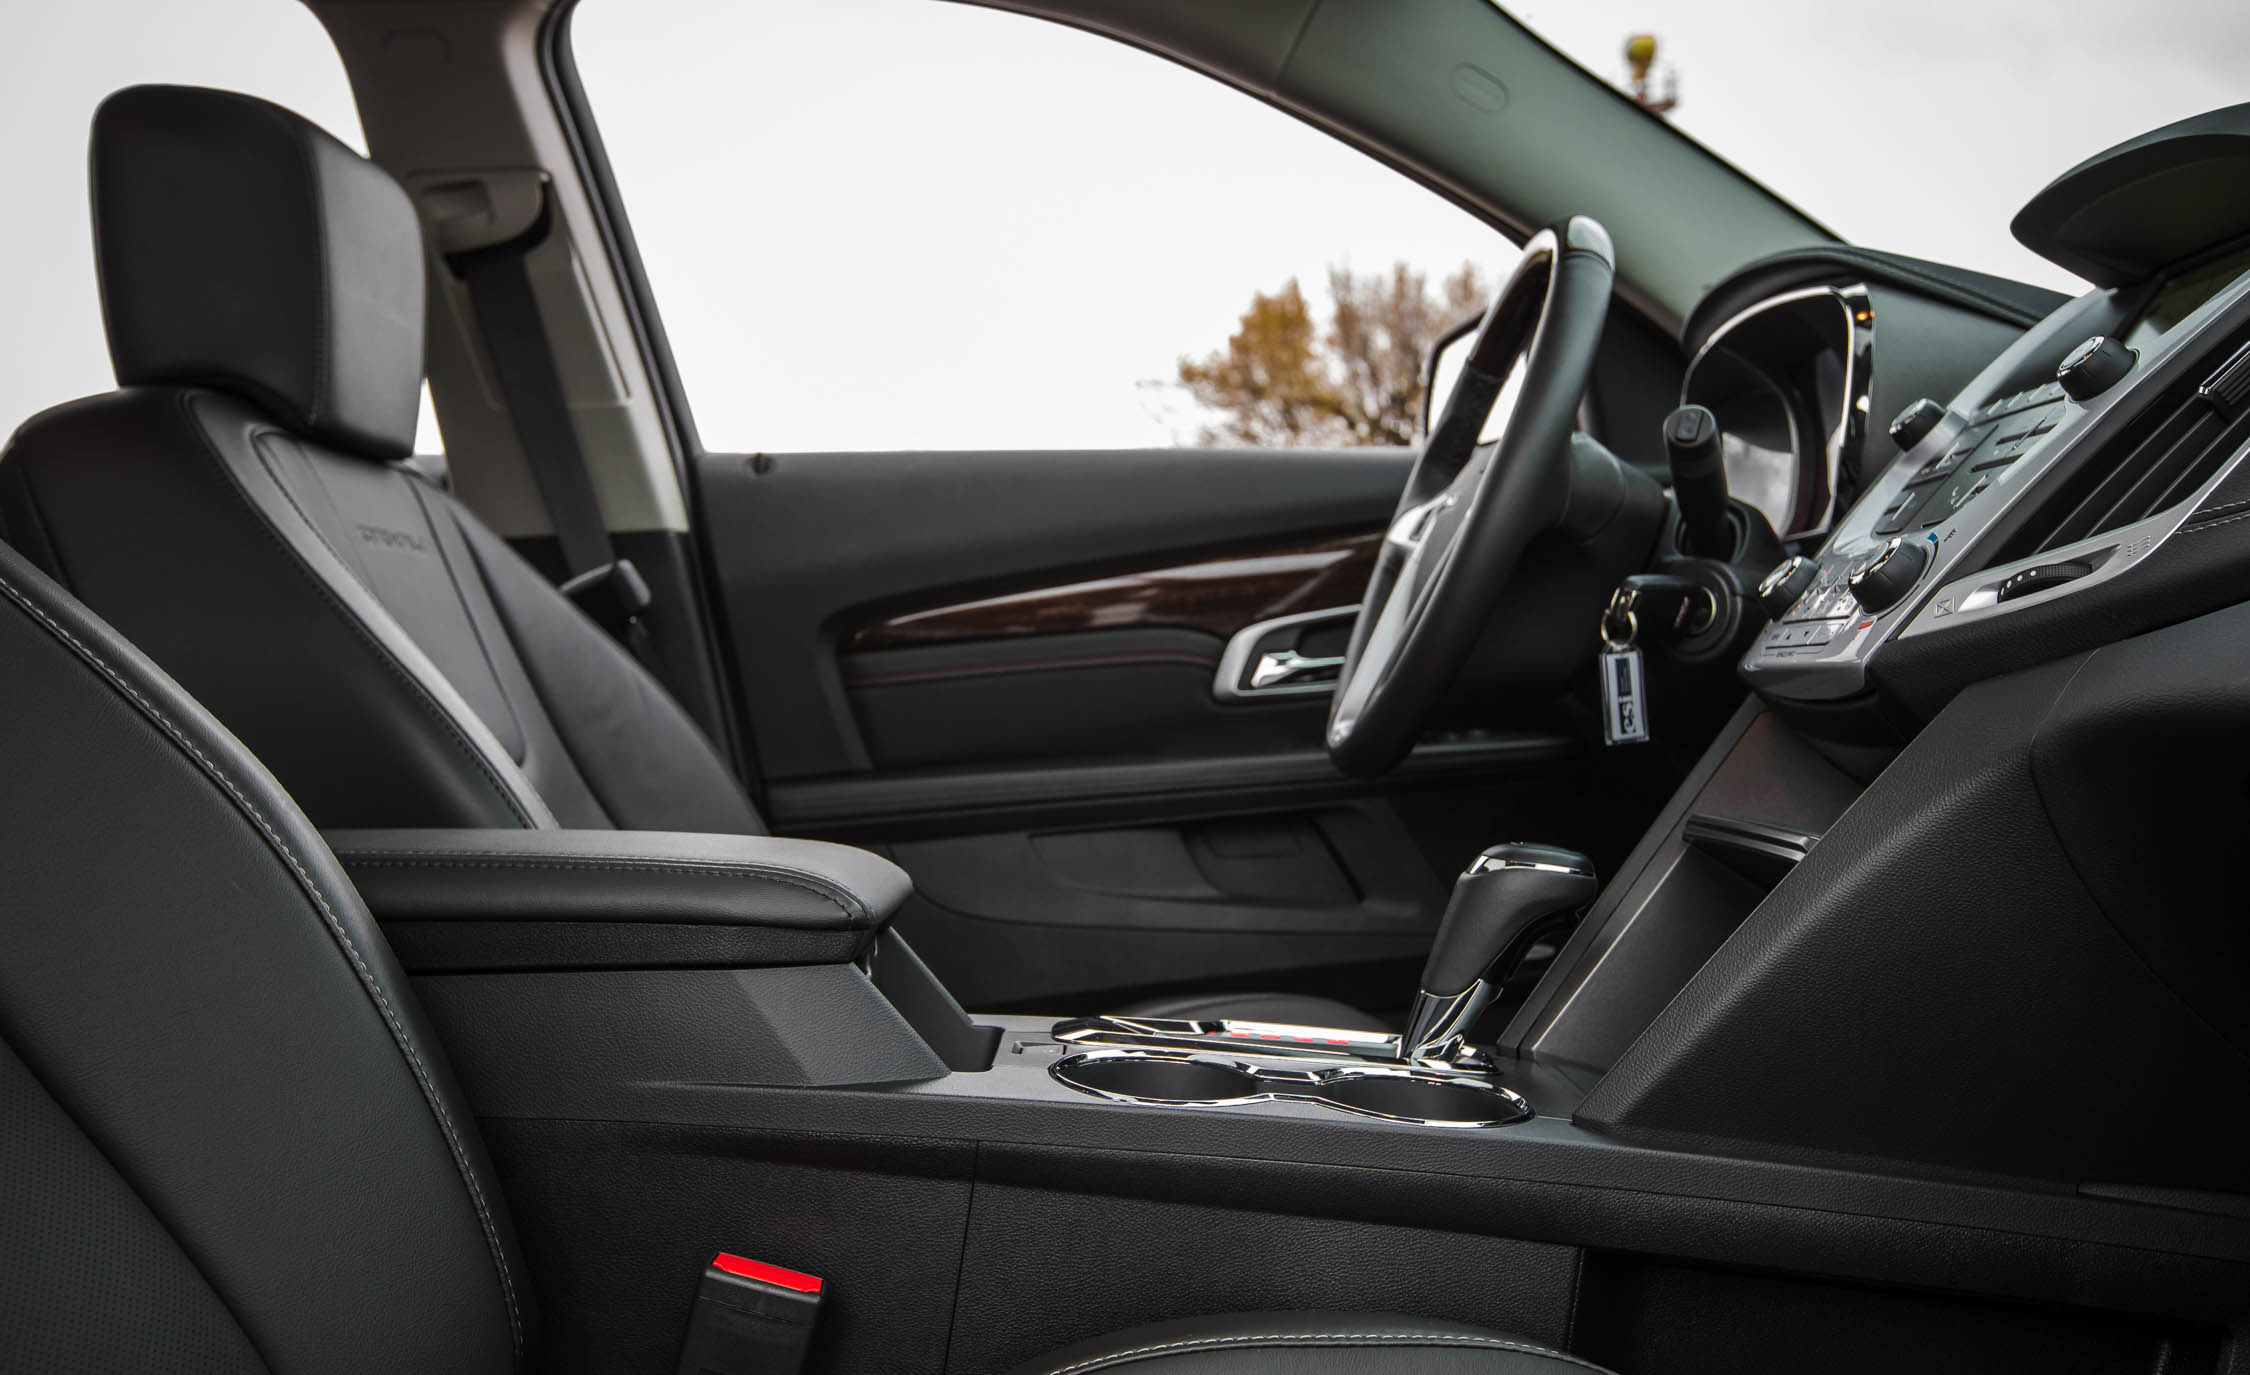 2016 GMC Terrain Denali Interior (Photo 21 of 24)